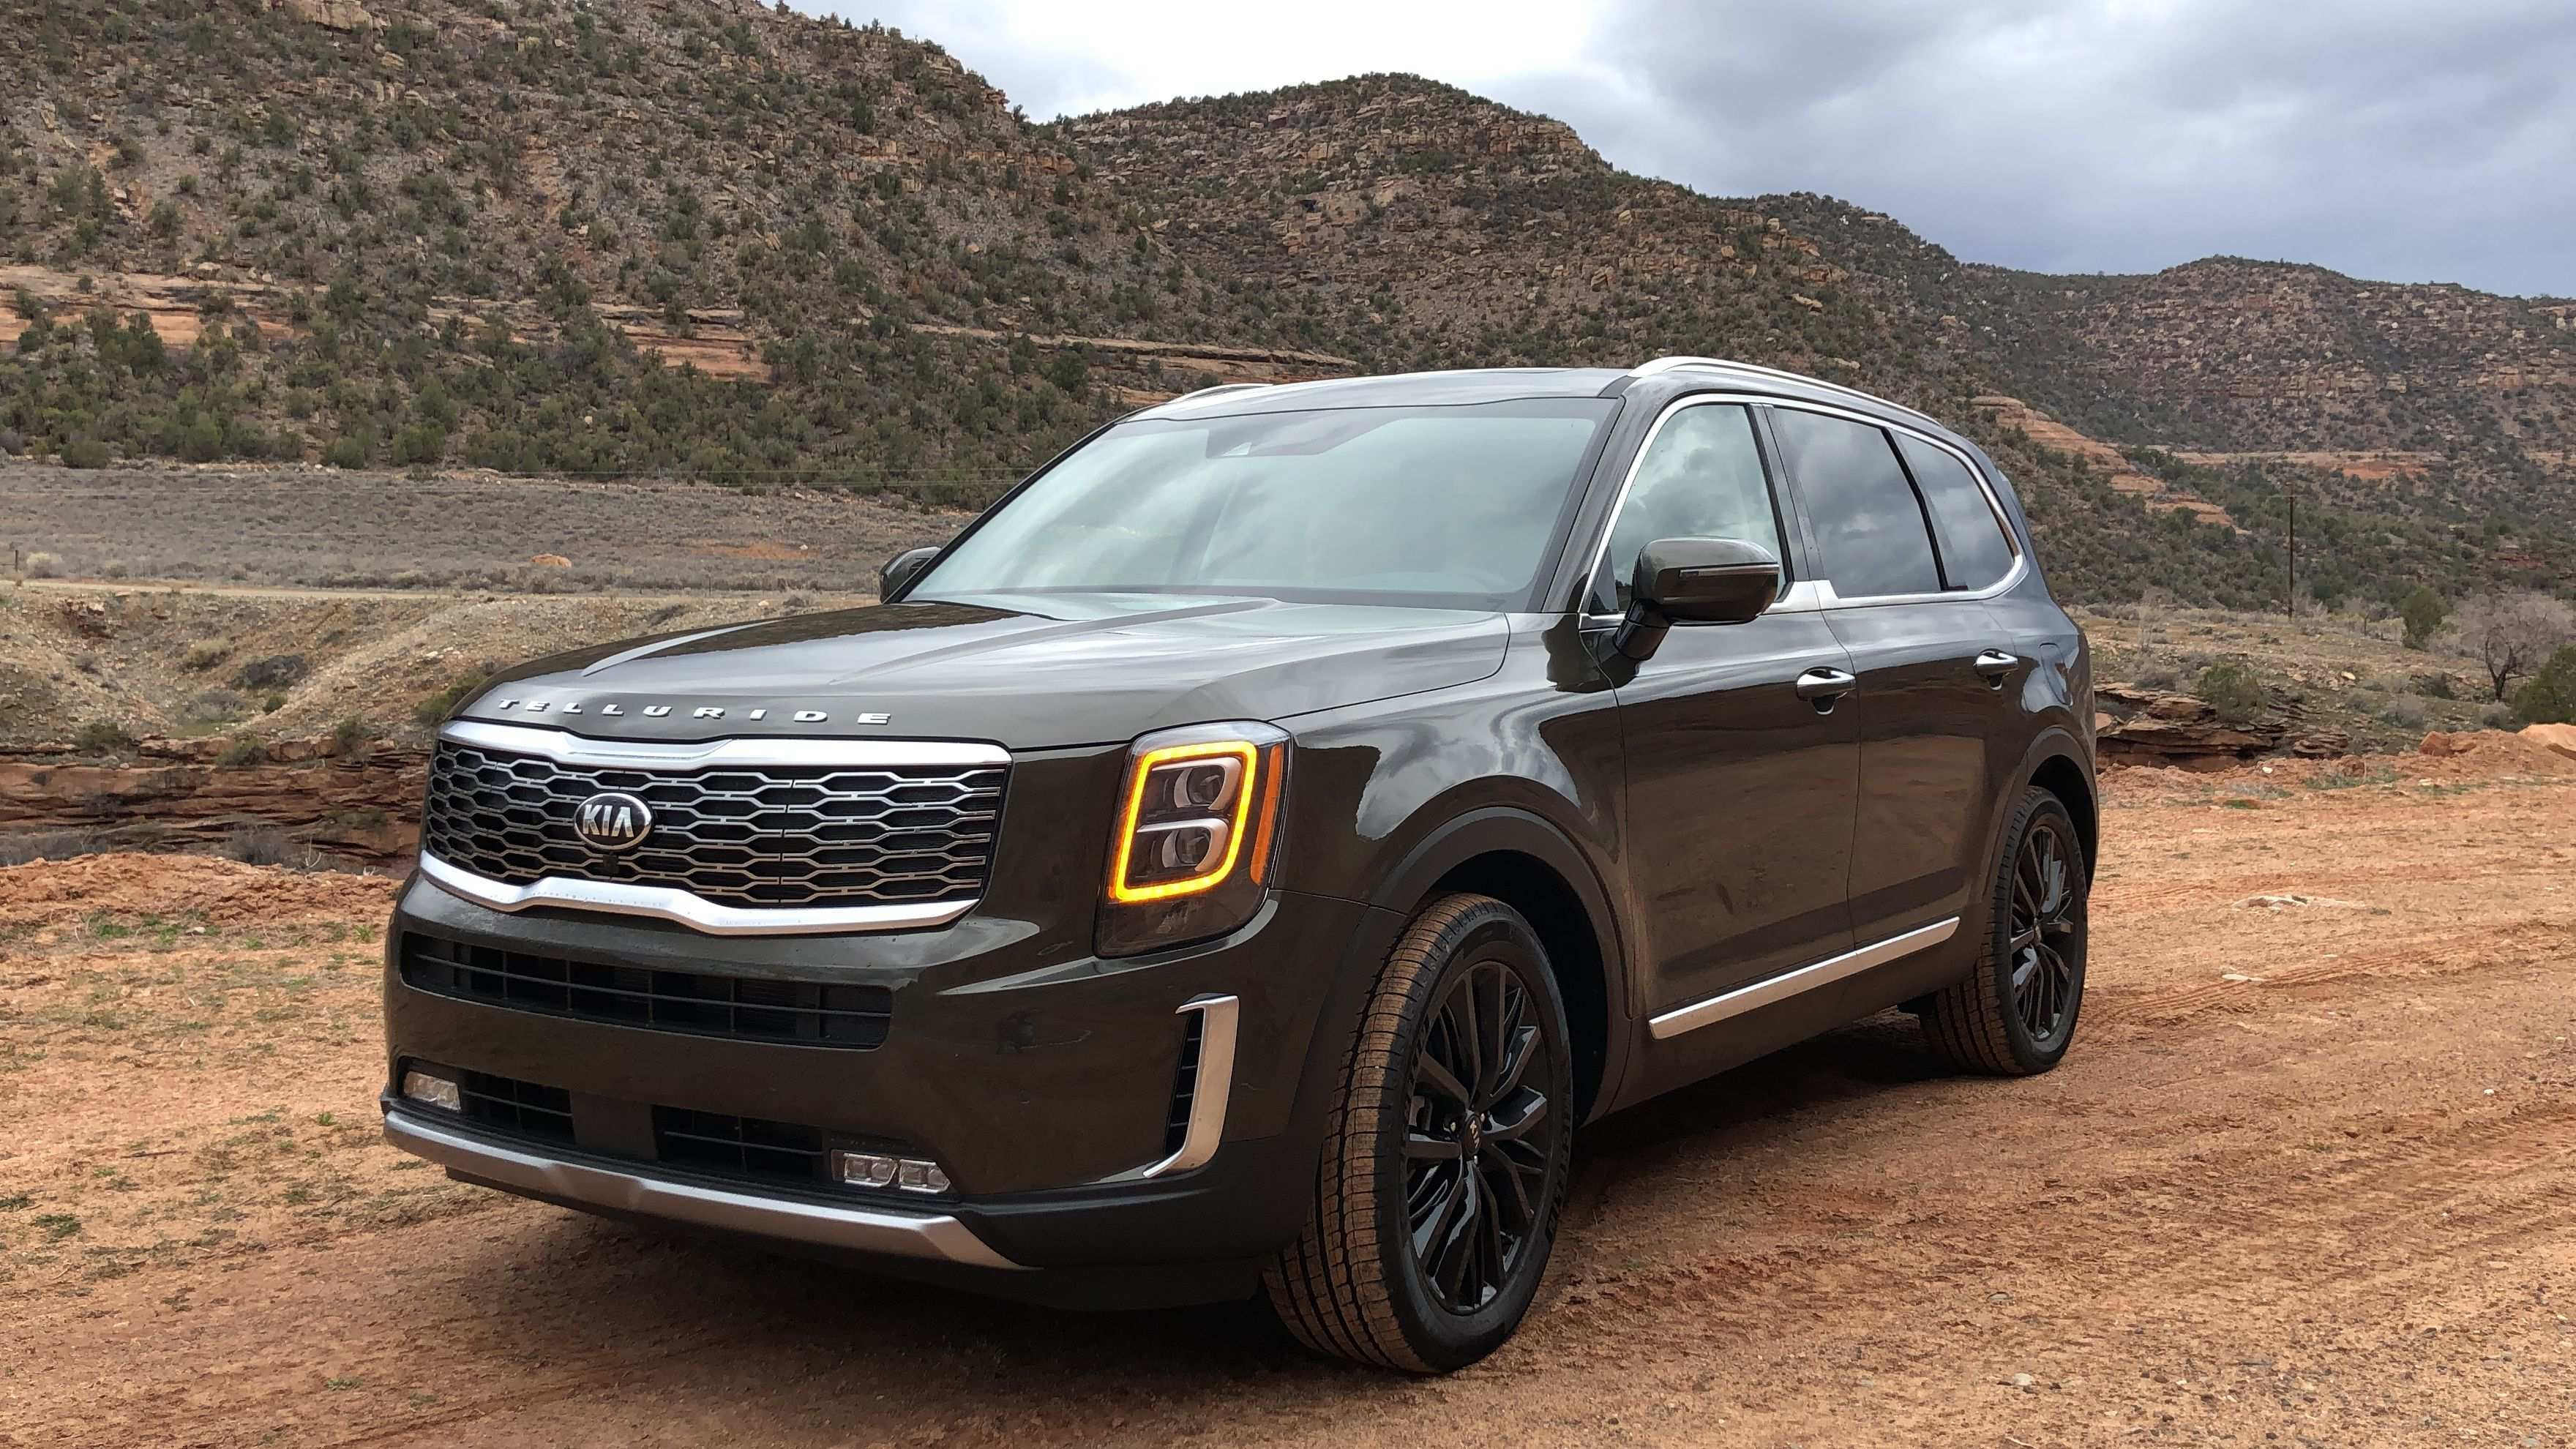 81 Great Telluride Kia 2019 Redesign by Telluride Kia 2019